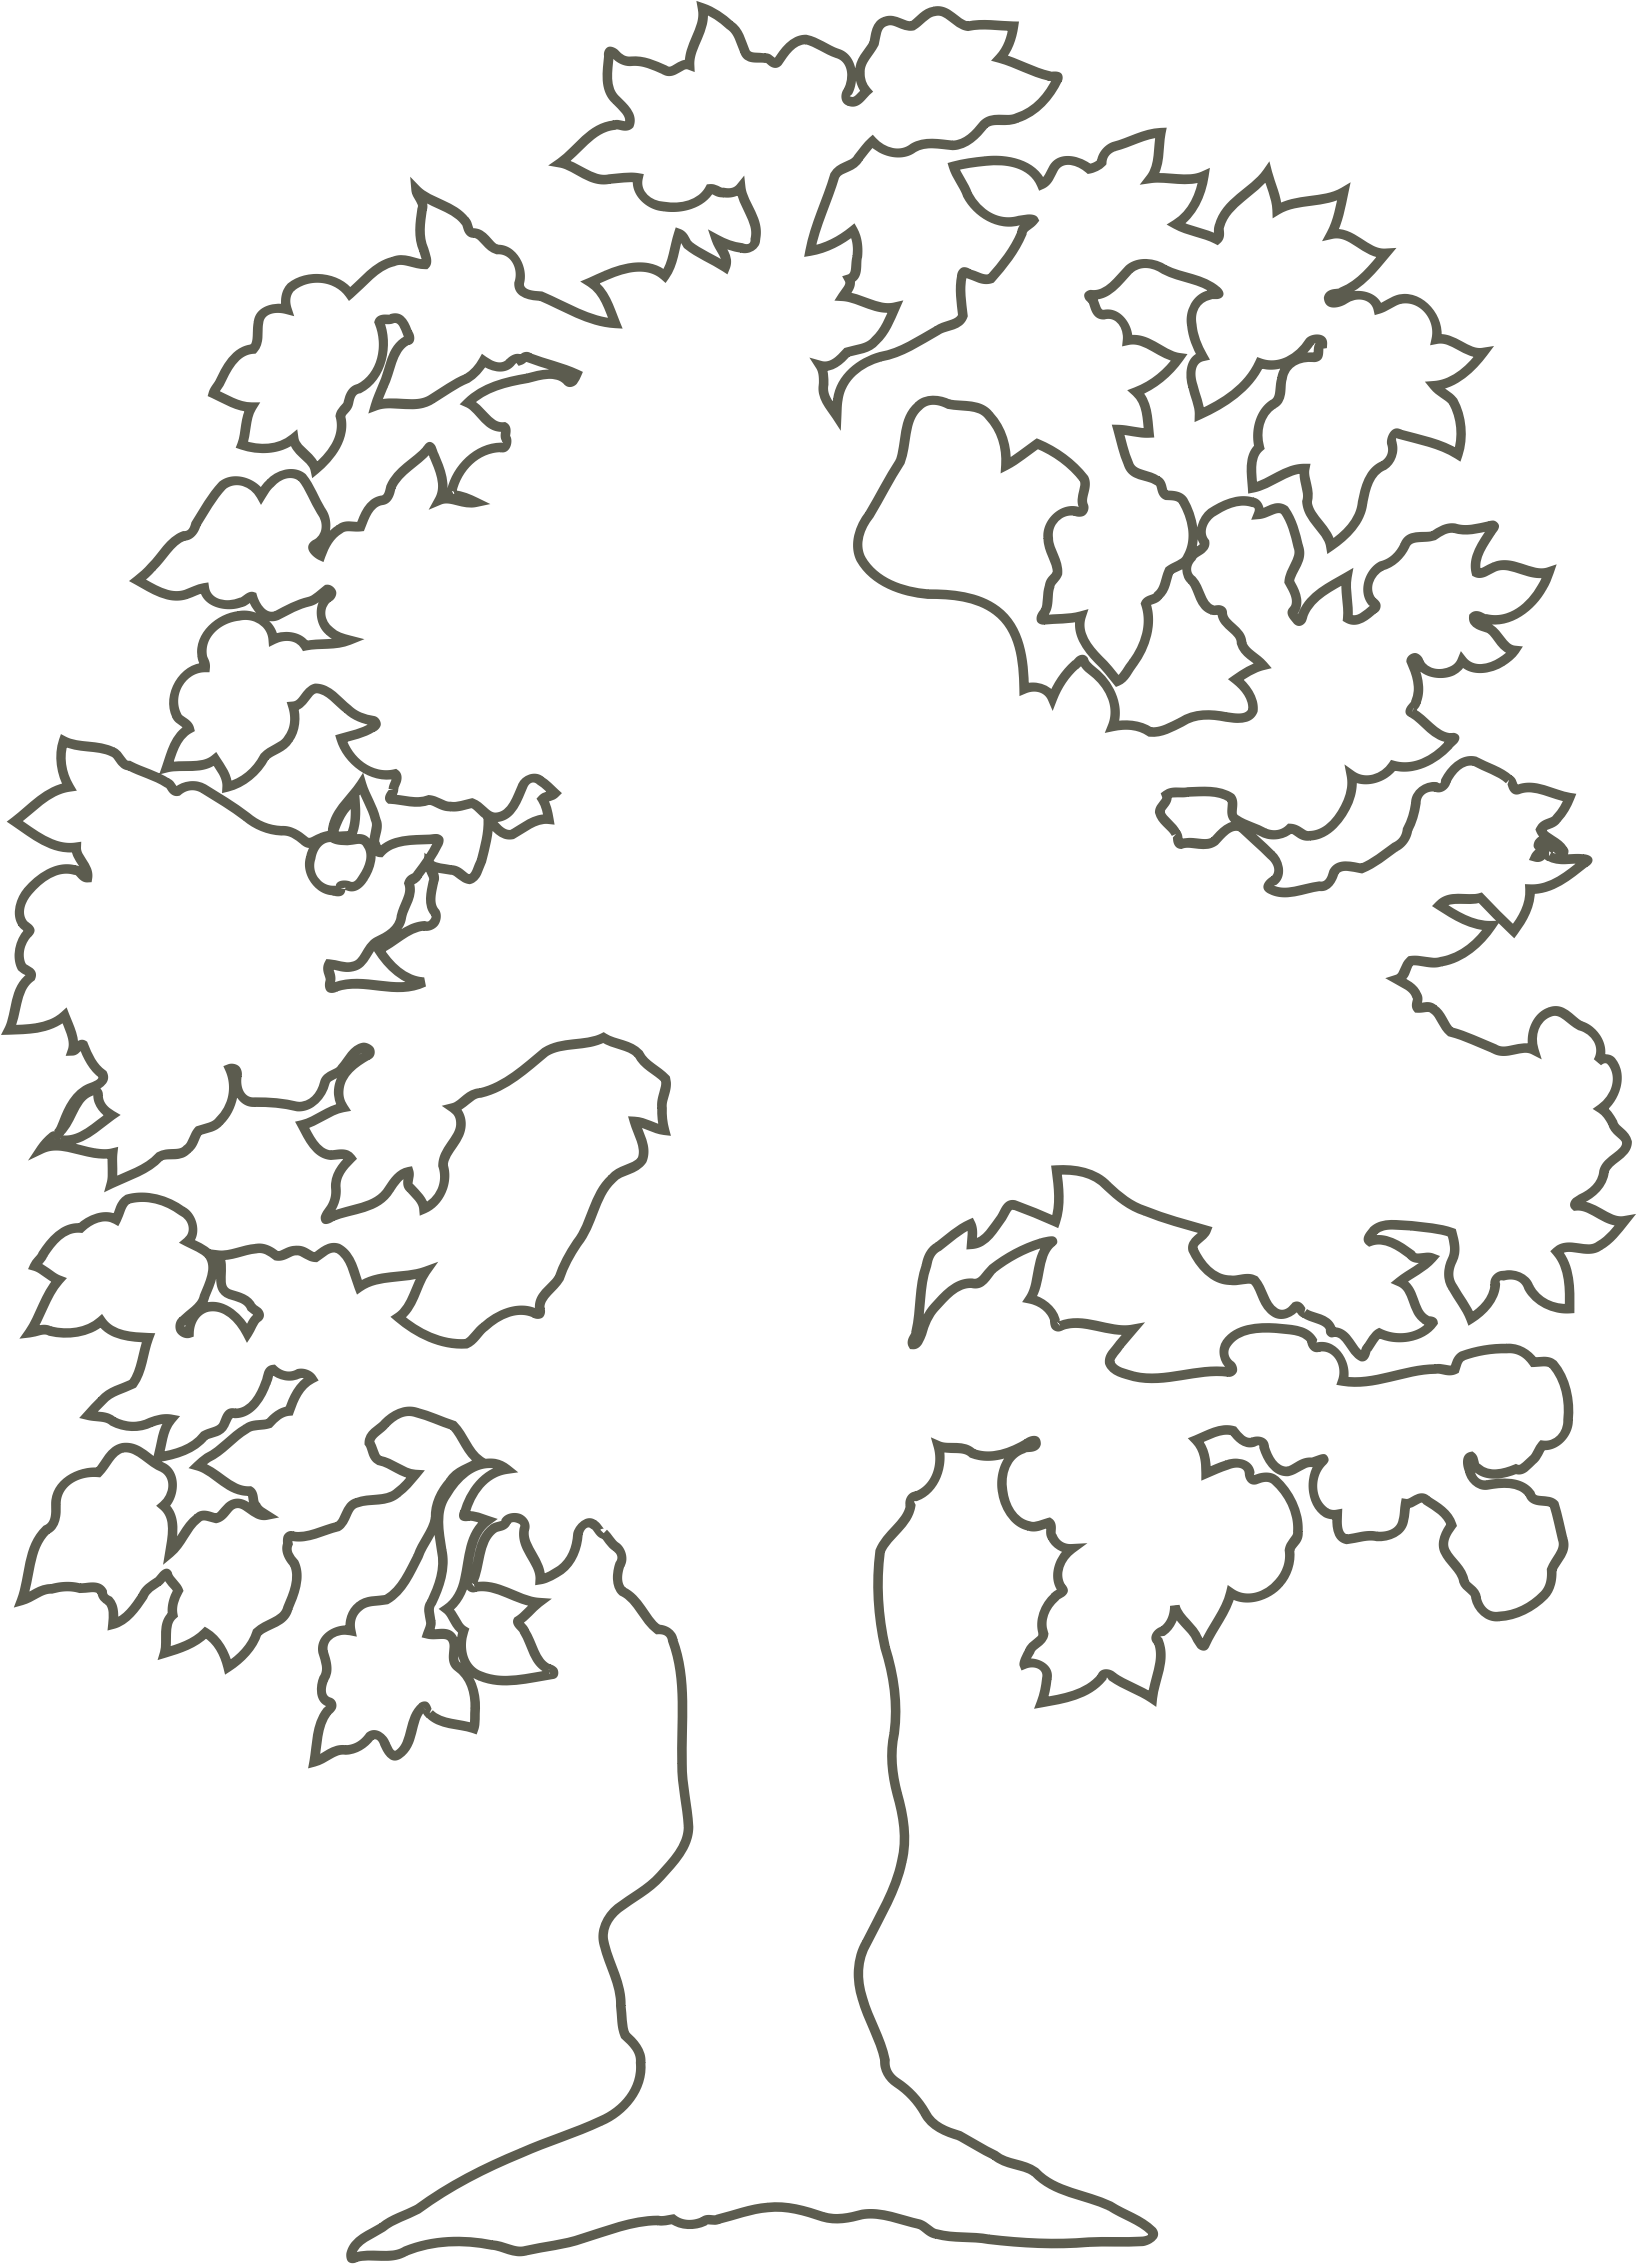 Simple Flowering Tree Outline By Andy Silhouette Of